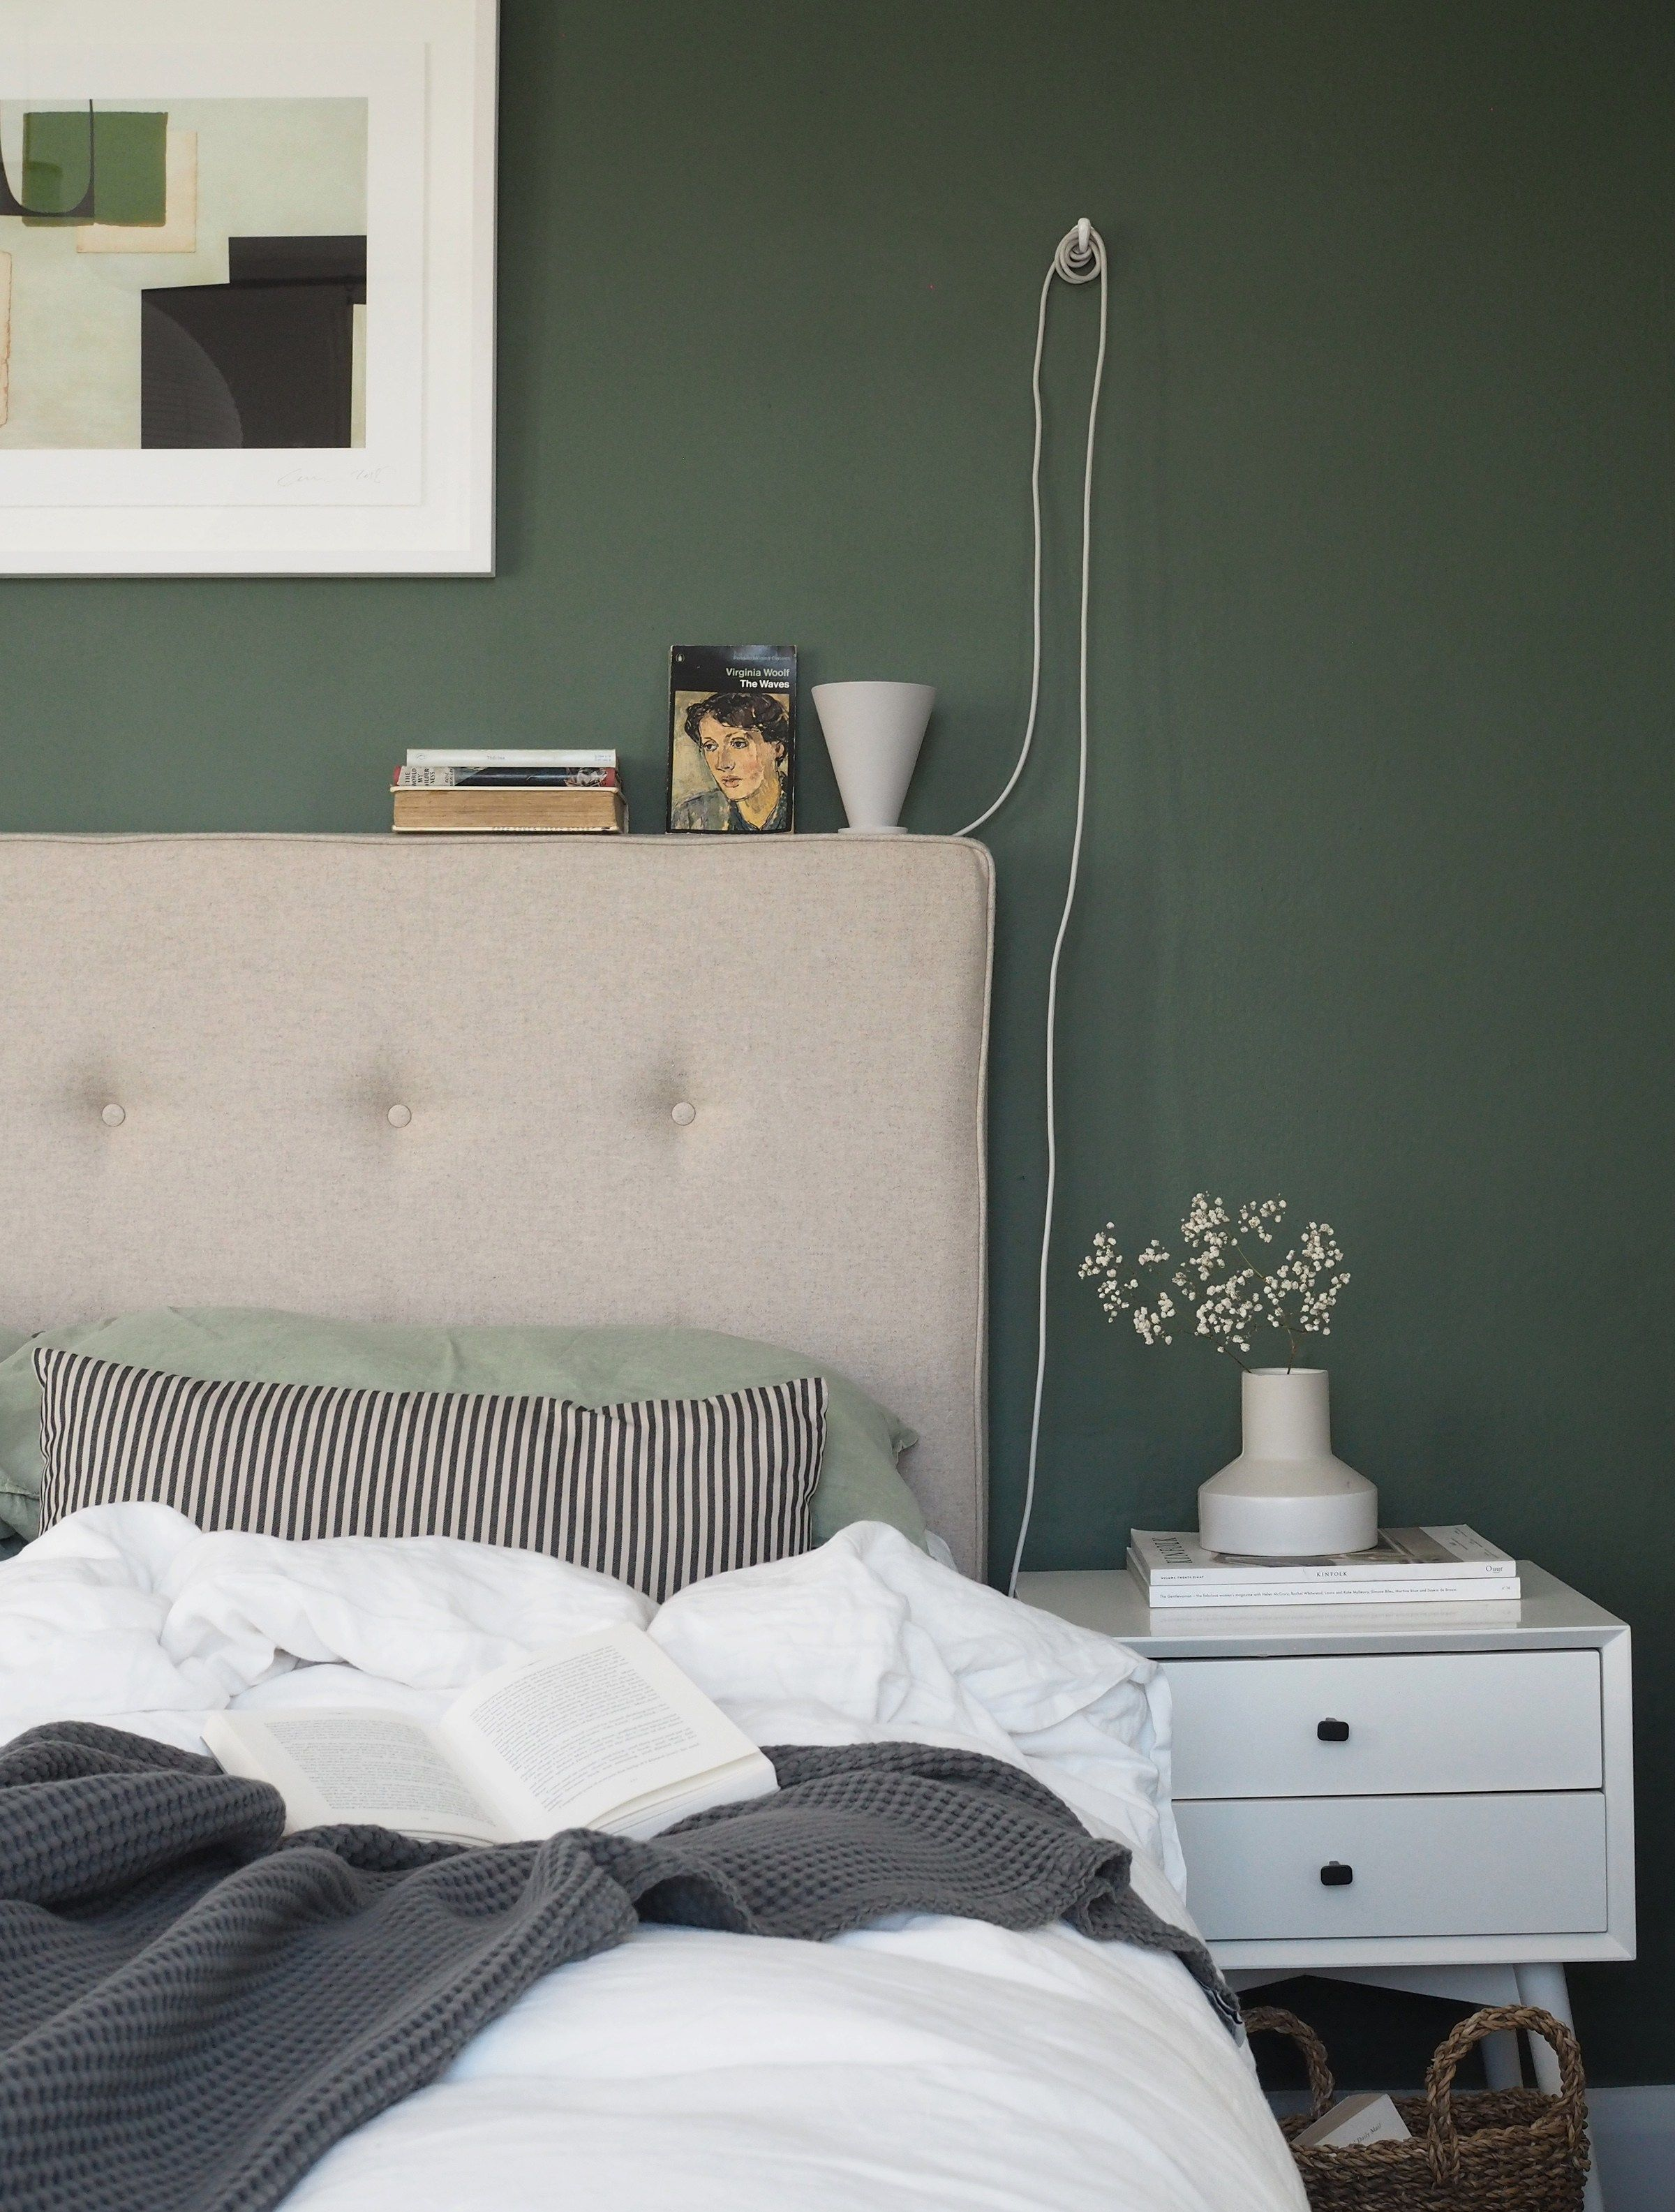 Sleep Soundly With A Sustainable Natural Bed From Button Sprung Ad Bed Frame Design Green Bedding Bedroom Green